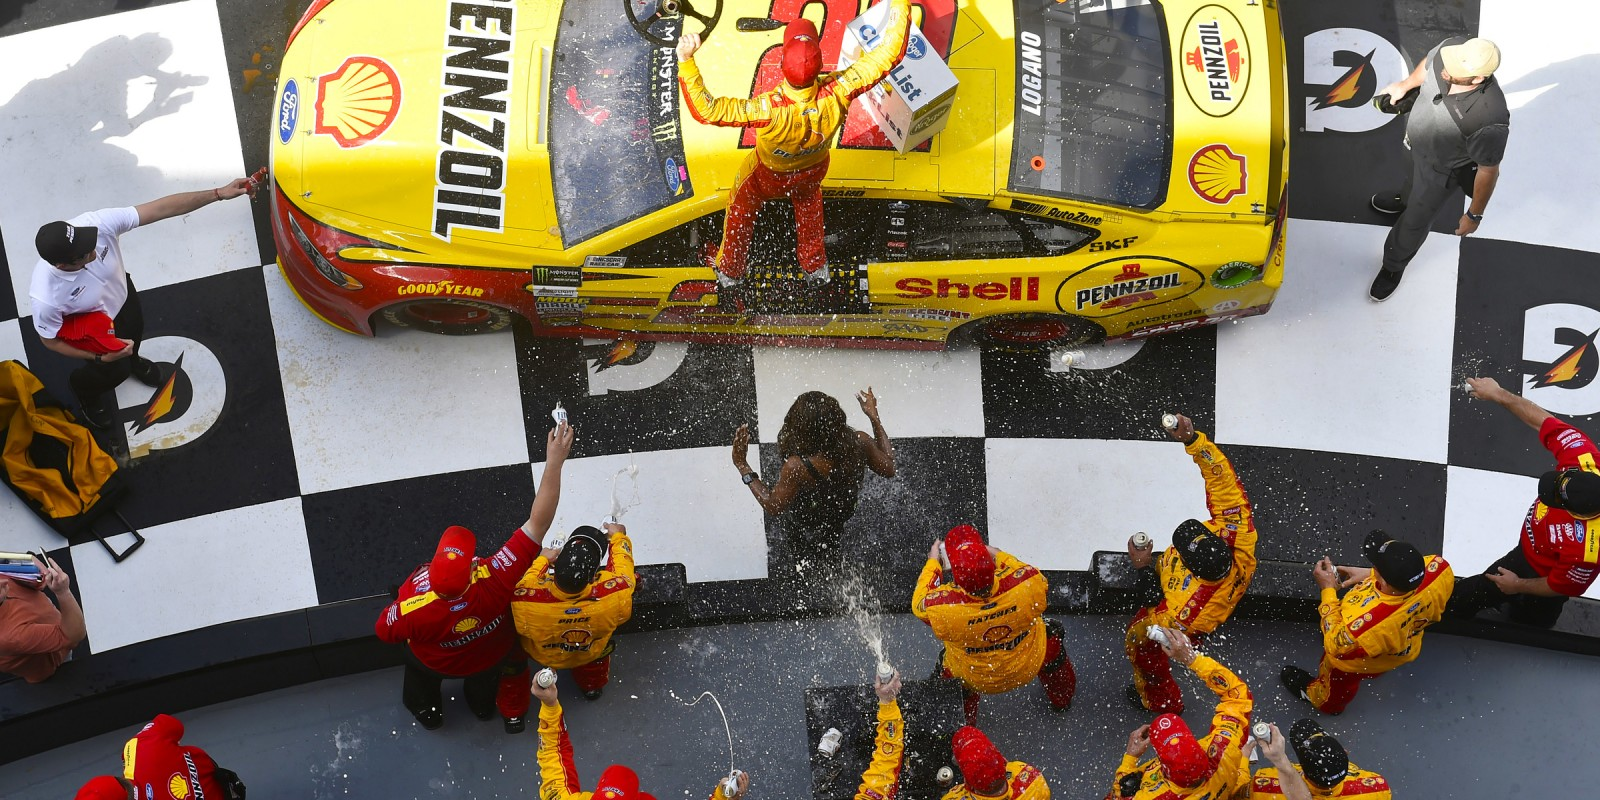 Joey Logano takes 1st place in the 2017 Monster Energy Nascar Cup Series opener at Daytona Florida Keywords